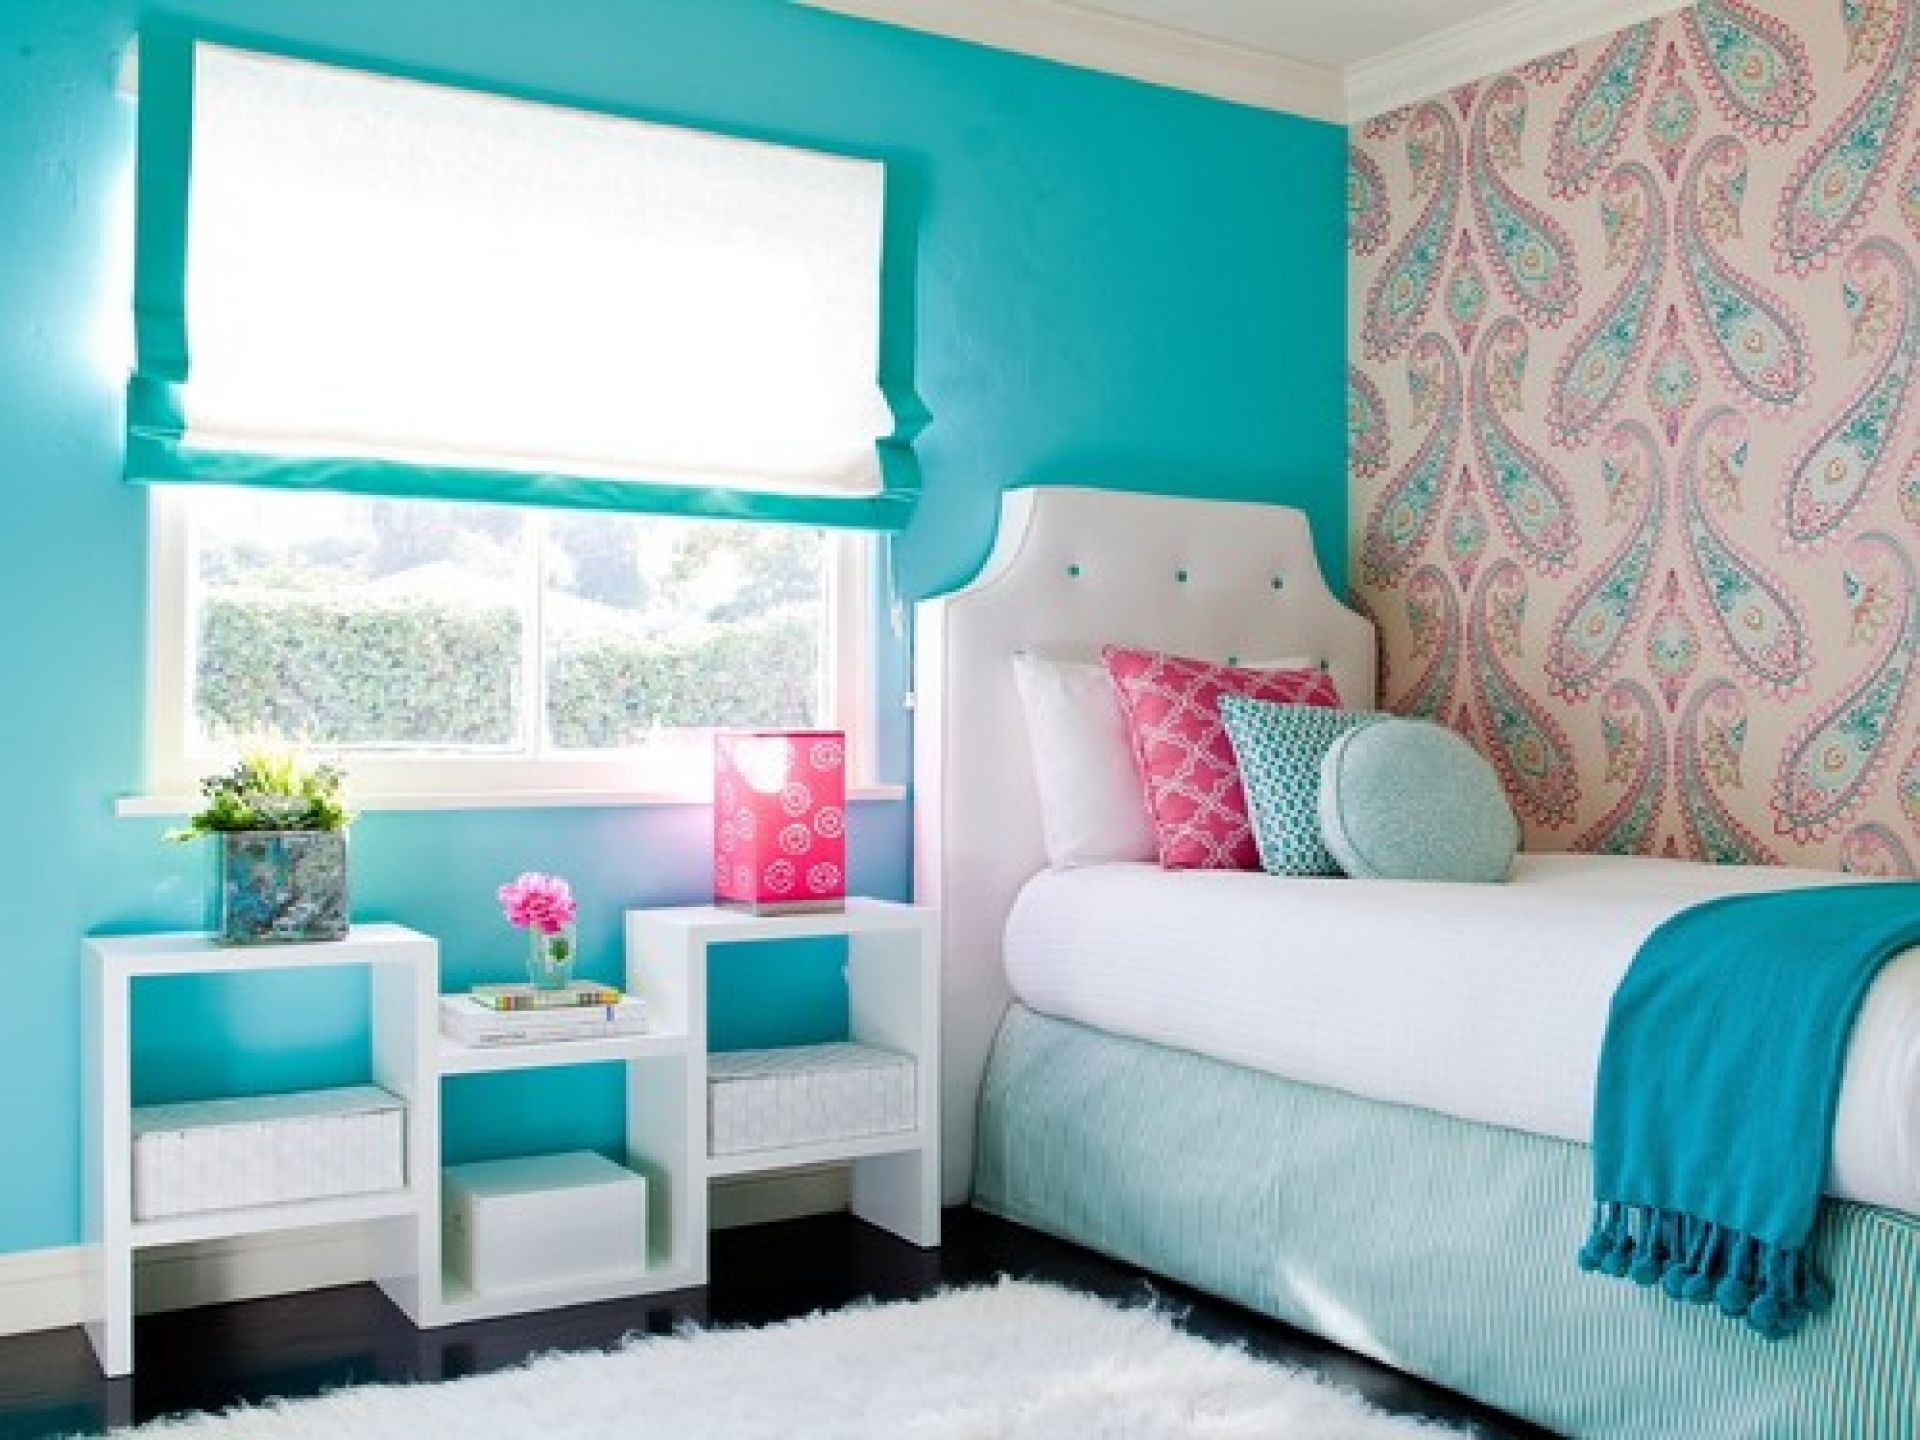 Simple design comfy room colors teenage girl bedroom wall for Good bedroom designs for teenage girls